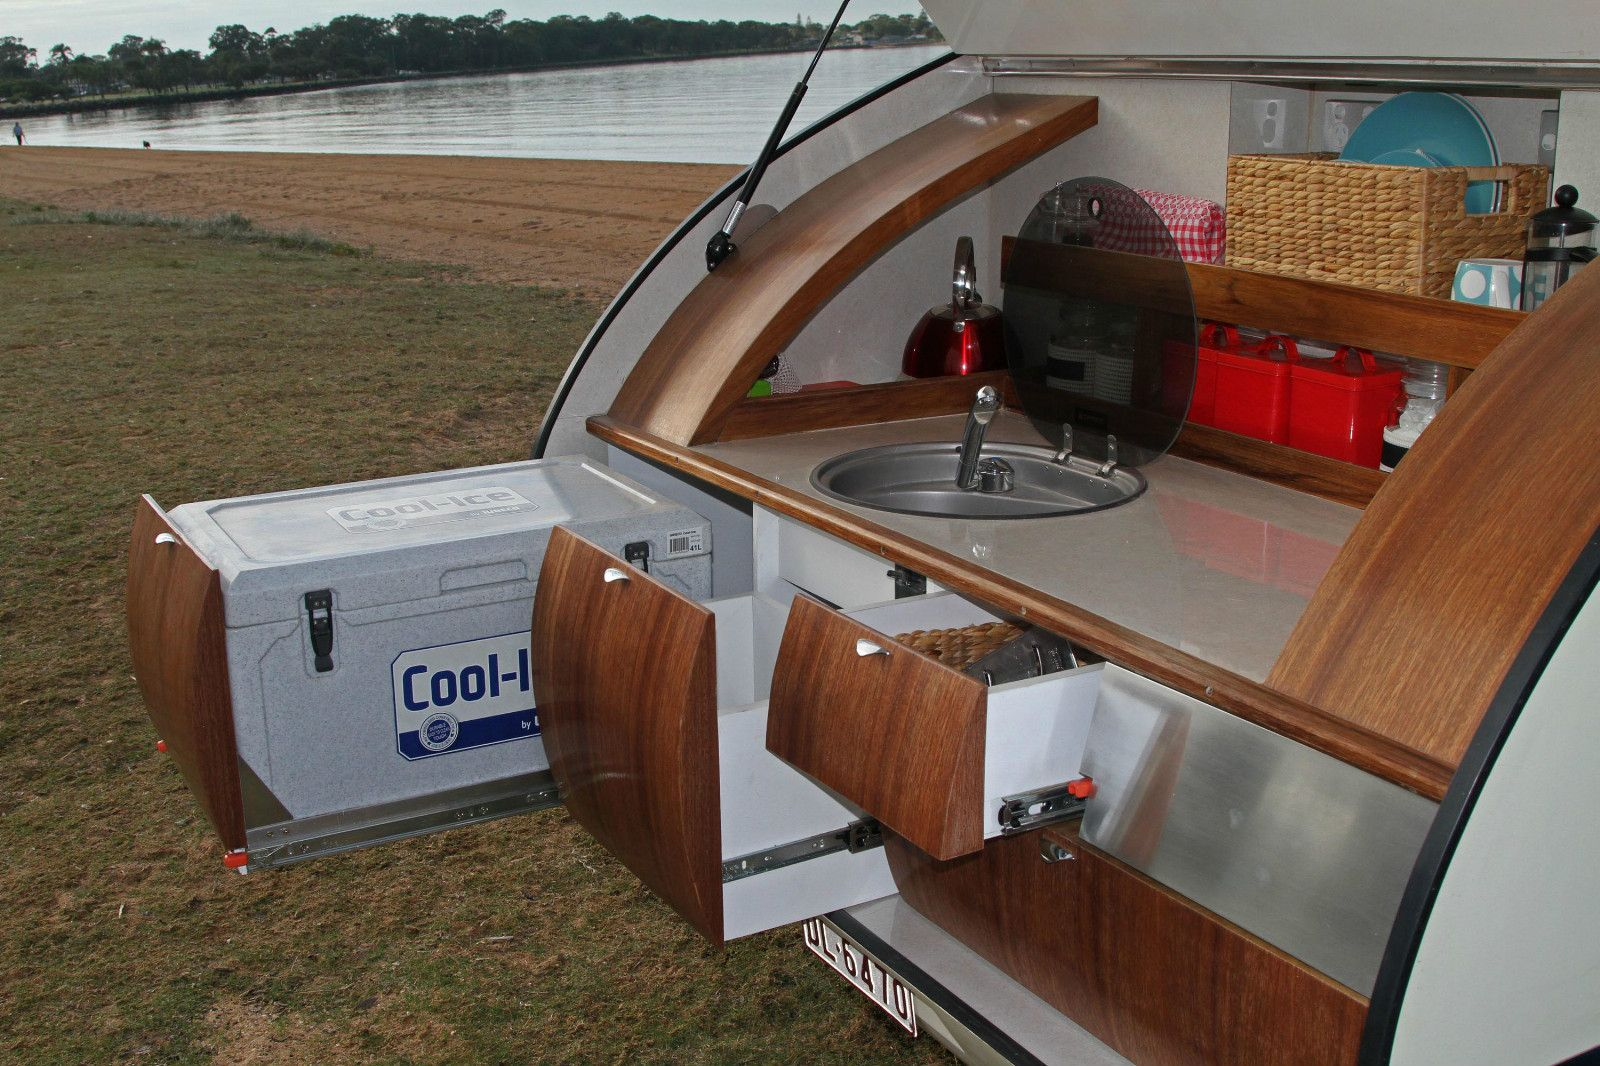 Camper Trailer Kitchen Gidget Retro Teardrop Camper Trailer Kitchen 2 Teardrop Campers